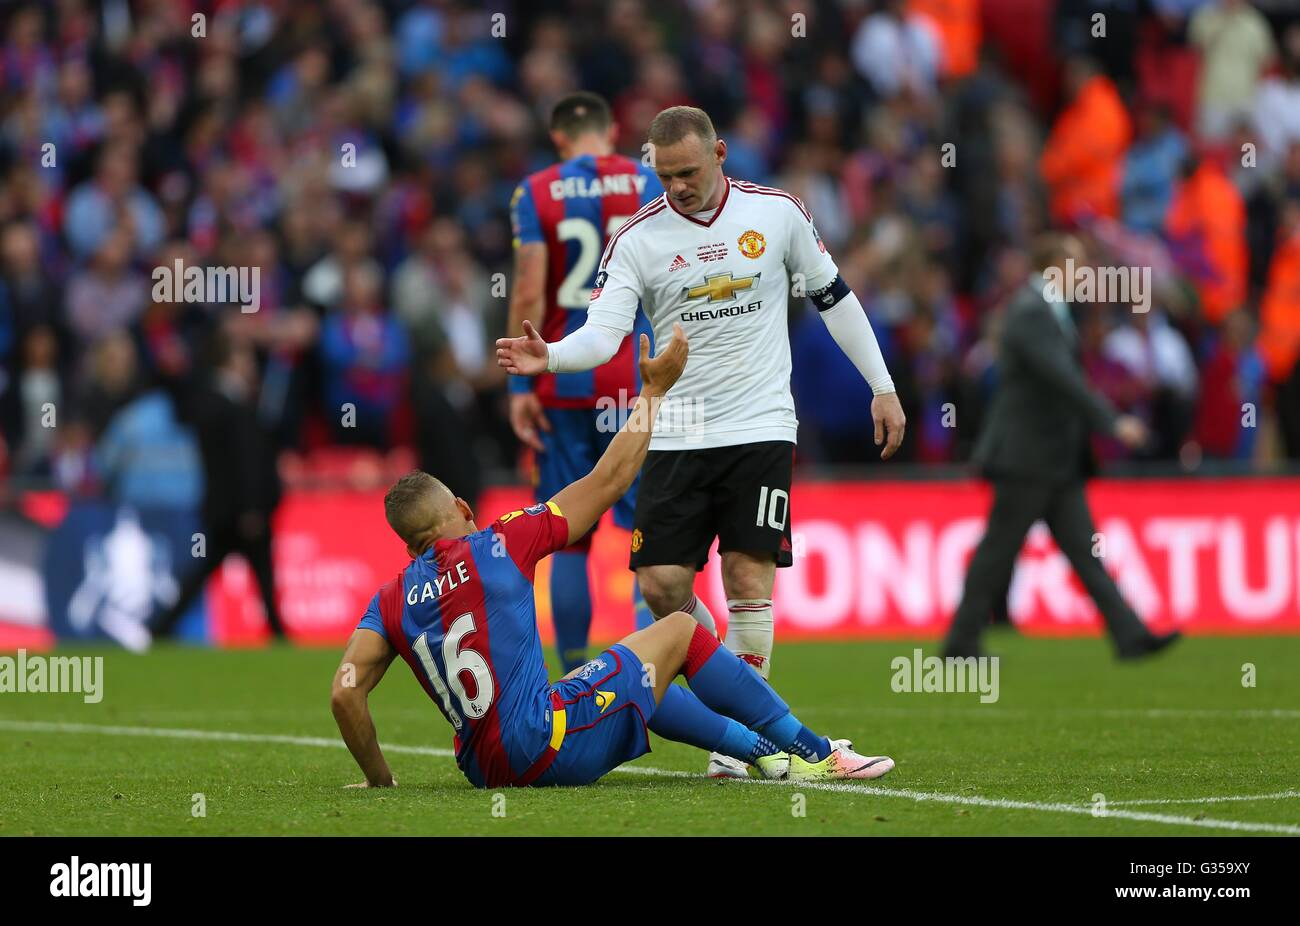 Wayne Rooney of Manchester United helps Crystal Palace's Dwight Gayle off the pitch after the Emirates FA Cup Final - Stock Image